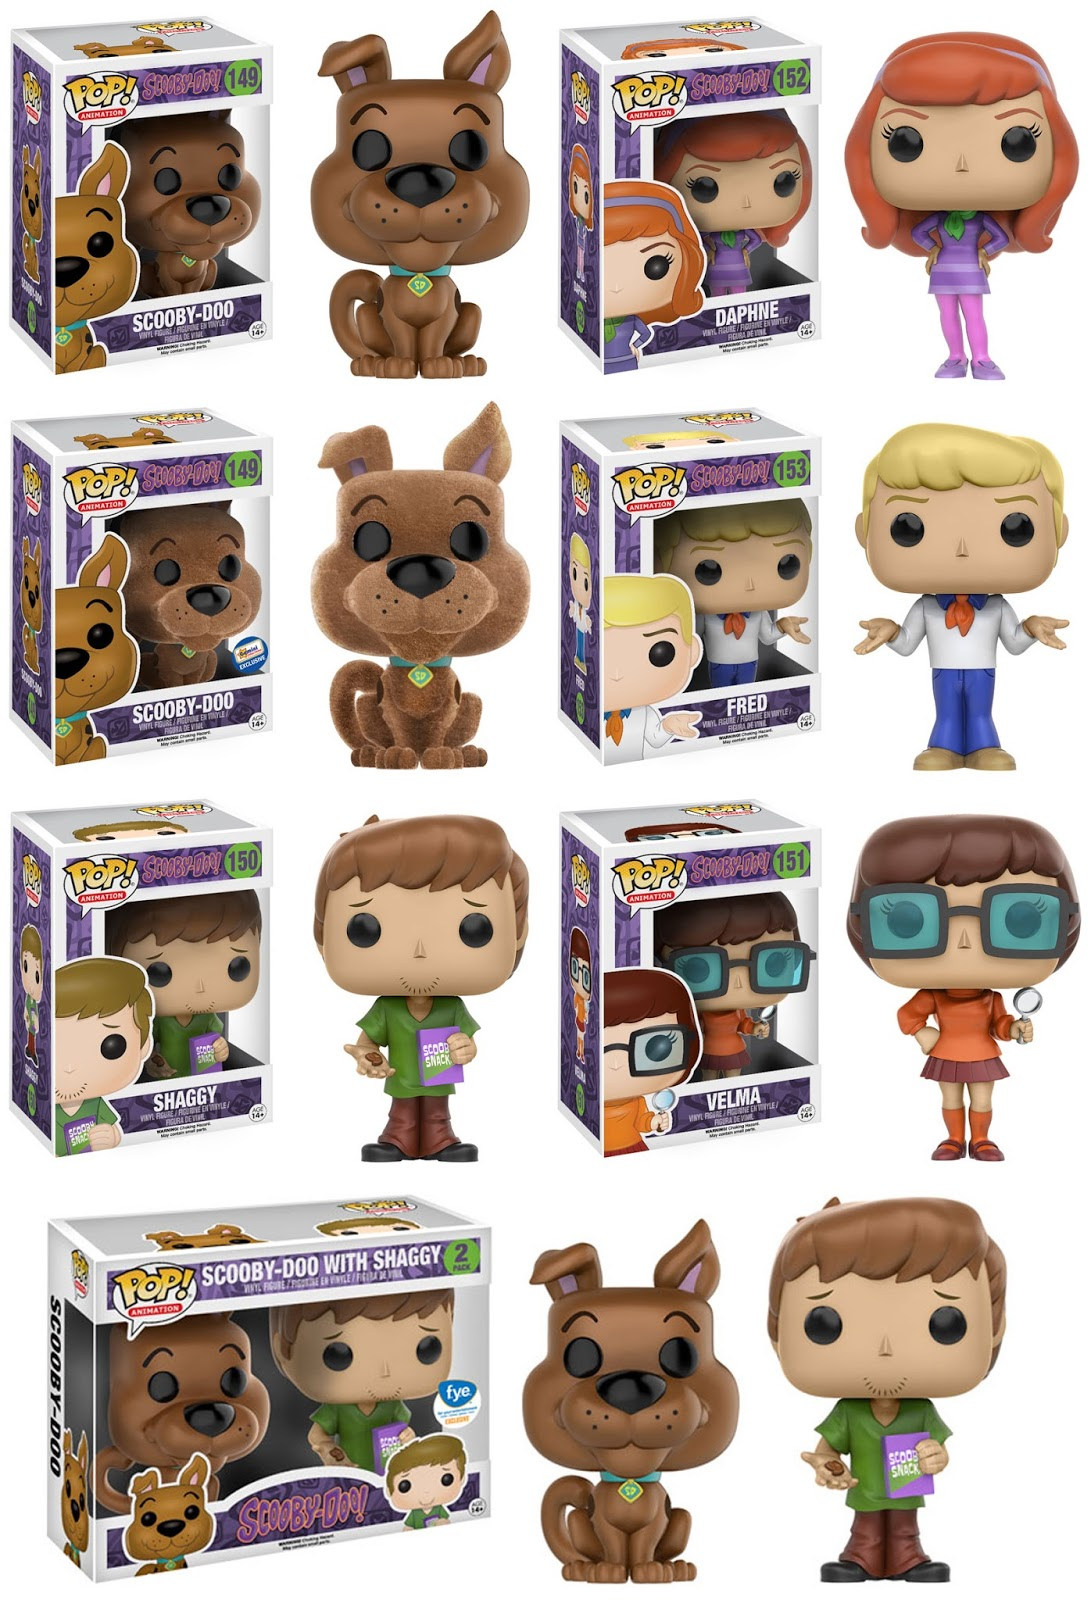 d03fe3a4effb5 Collecting Toyz  Funko Announces Scooby Doo   Street Fighter POP ...